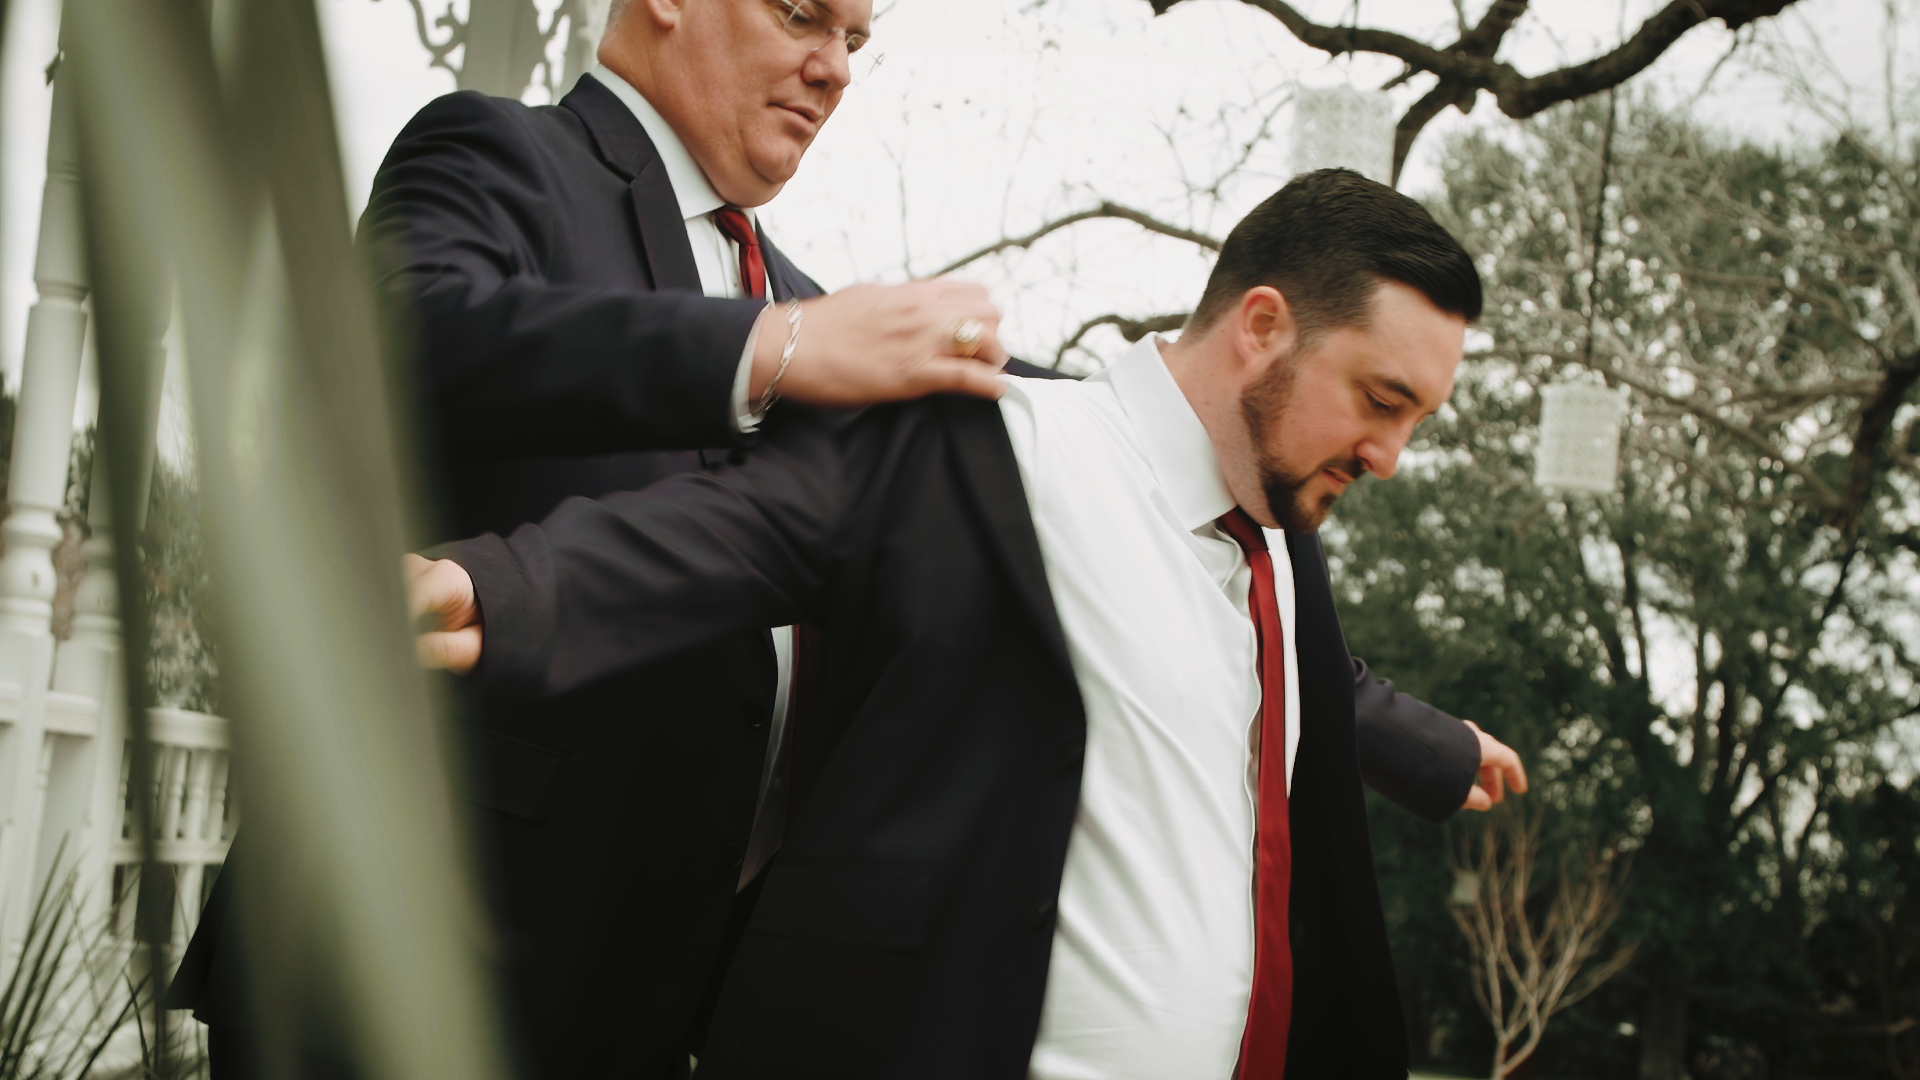 Barr_Mansion_Austin_Wedding_Videographer_New_Beginnings_Films_14.png